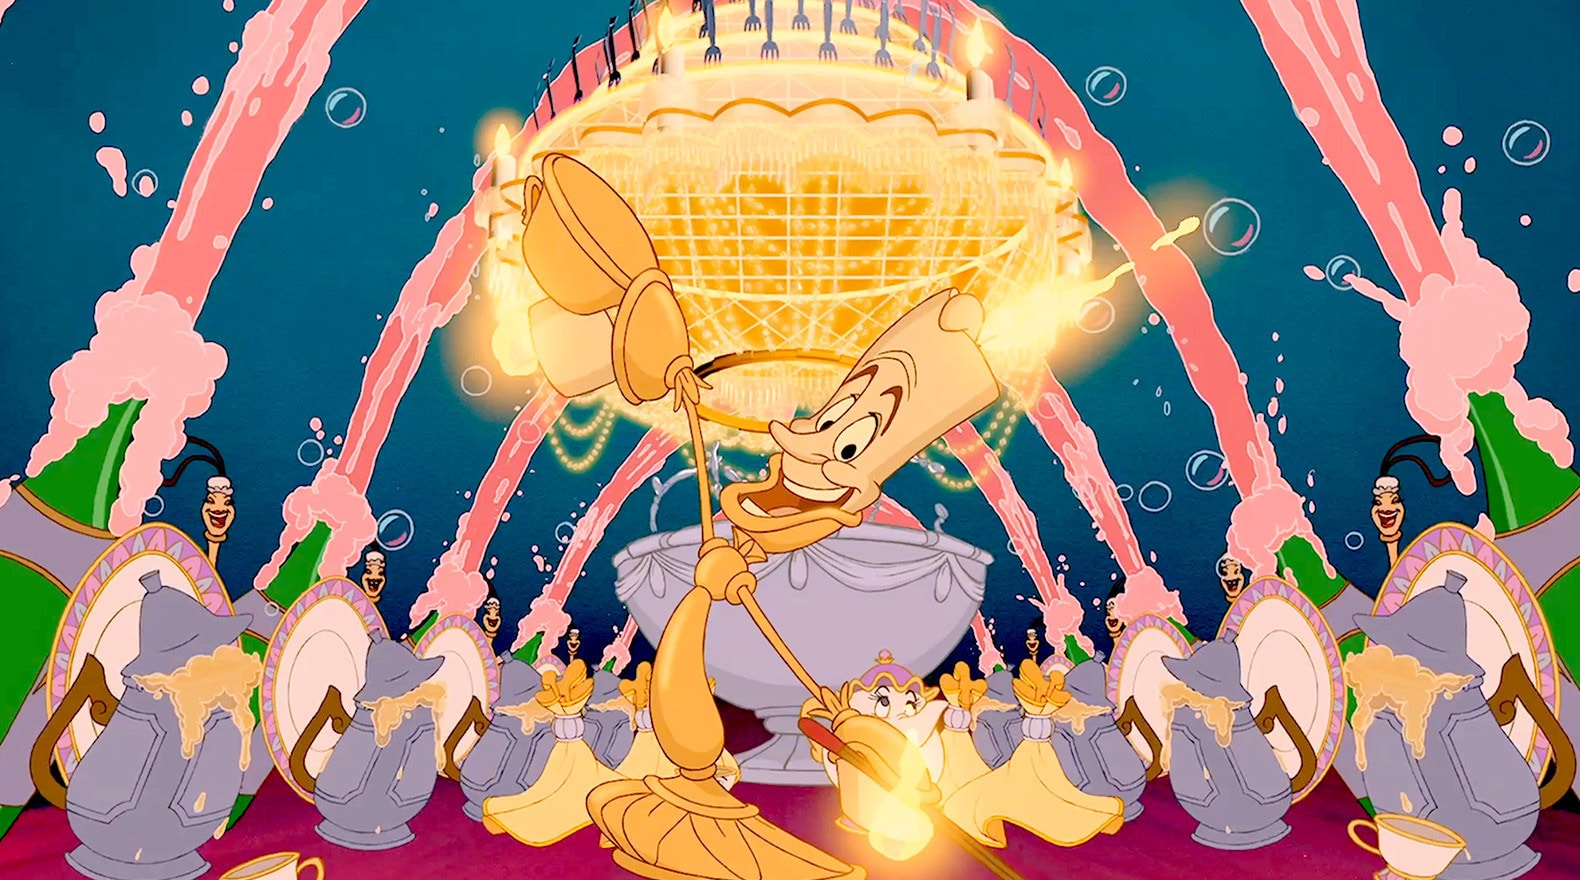 Lumiere pulls out all the stops in welcoming Belle.